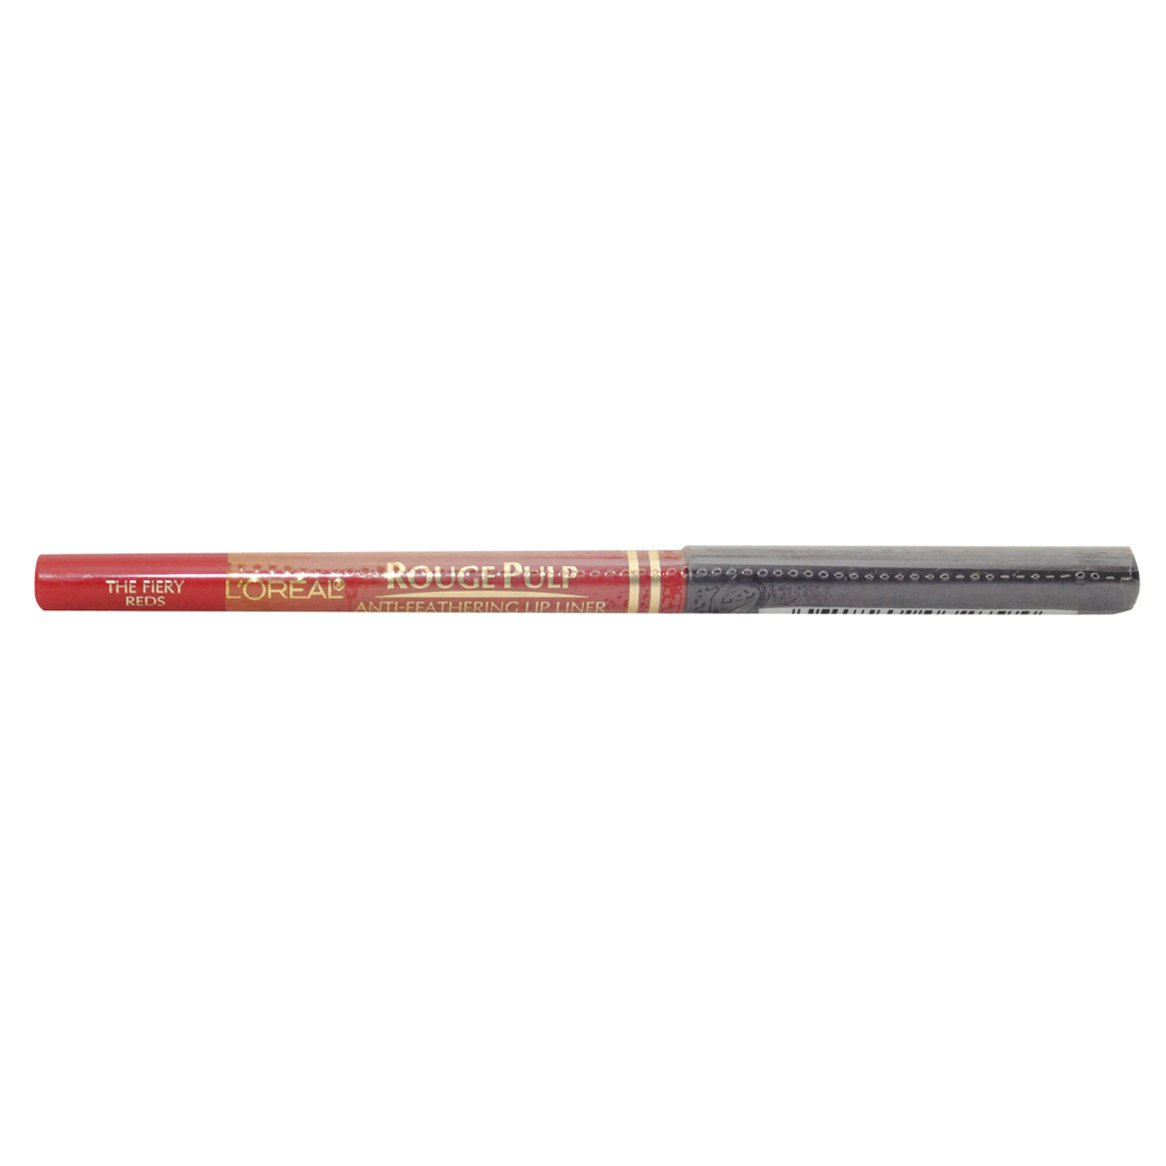 L'oreal Rouge Pulp Anti-feathering Lip Liner Pencil, The Fiery Reds. by COSMAIR